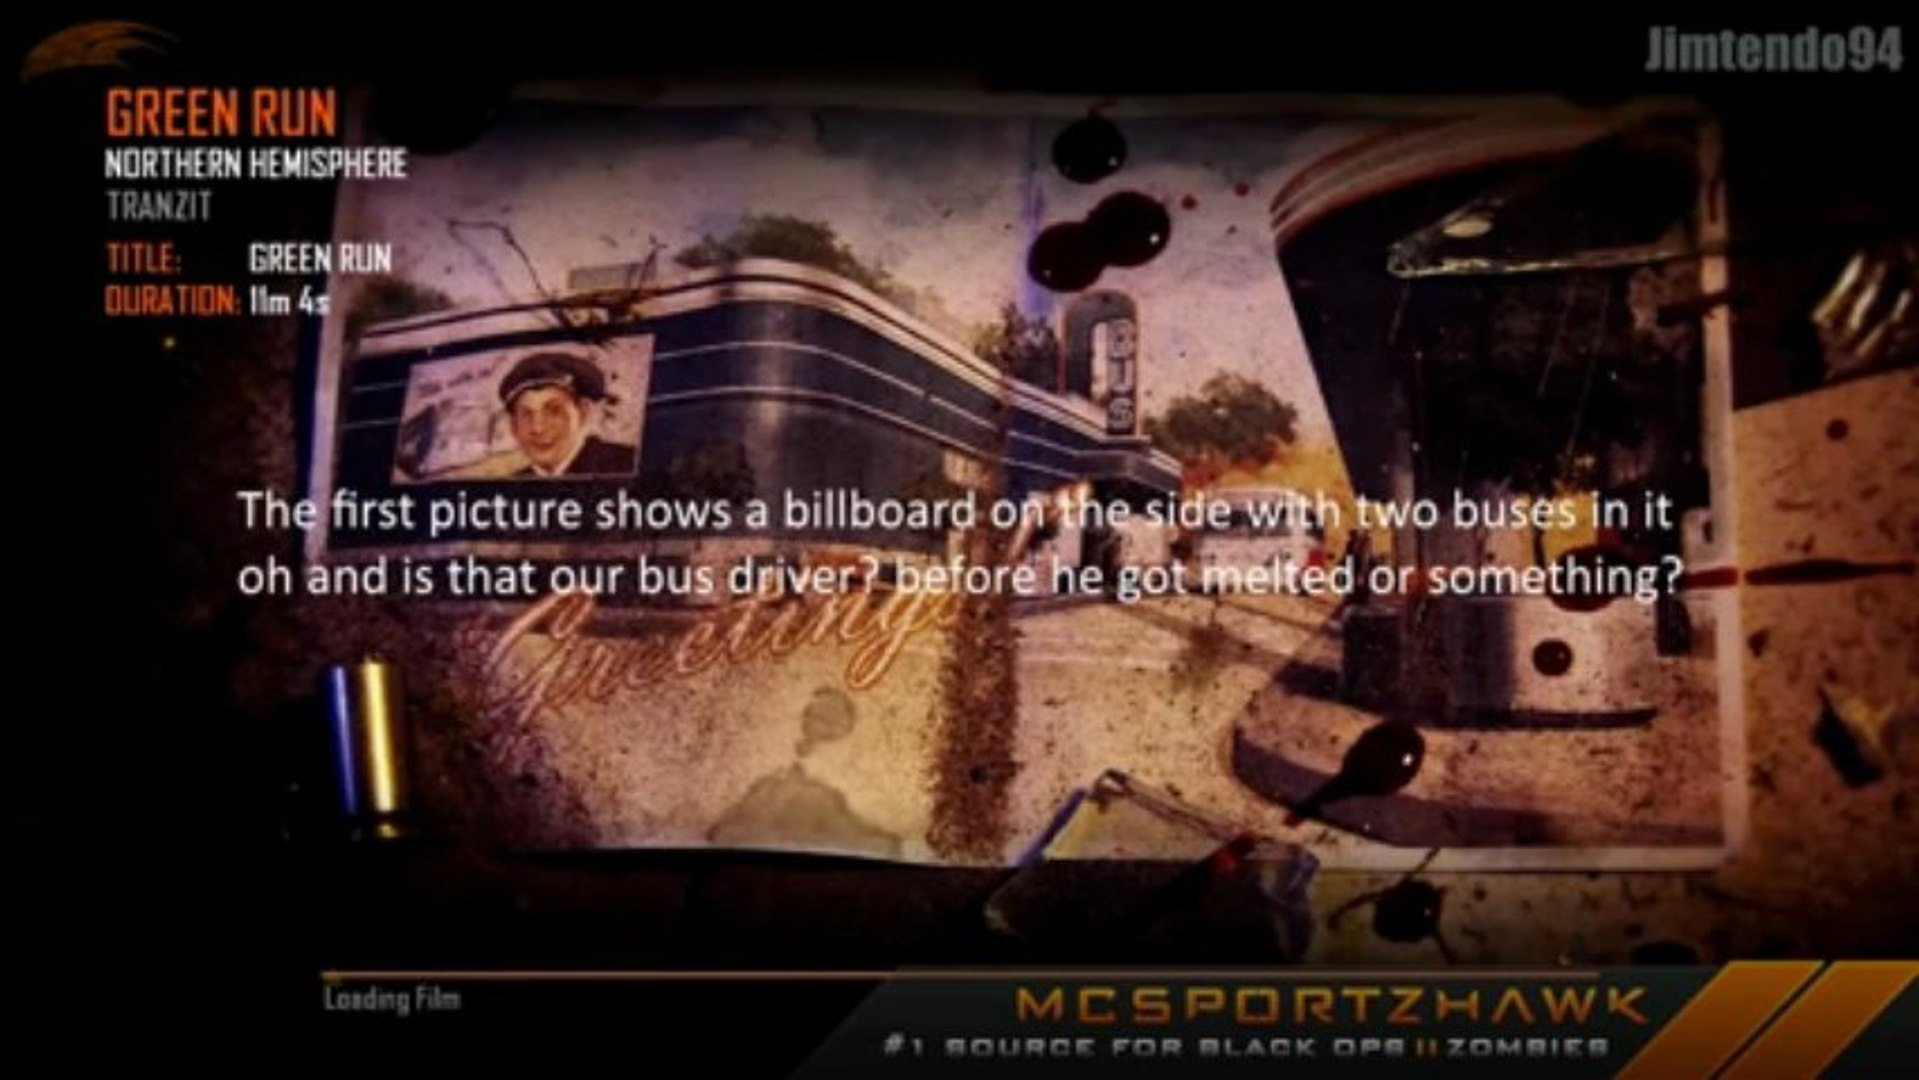 Black Ops 2 Zombies: Tranzit Easter Eggs - Hidden Second Bus + Secret on tranzit map overview, exo zombies map, bo2 tranzit map, for black ops 2 tranzit map, cornfield tranzit map, tranzit strategy map, call of duty black ops 2 tranzit map, cod 2 tranzit map, tranzit map layout with items, minecraft black ops 2 tranzit map, hidden in tranzit map,